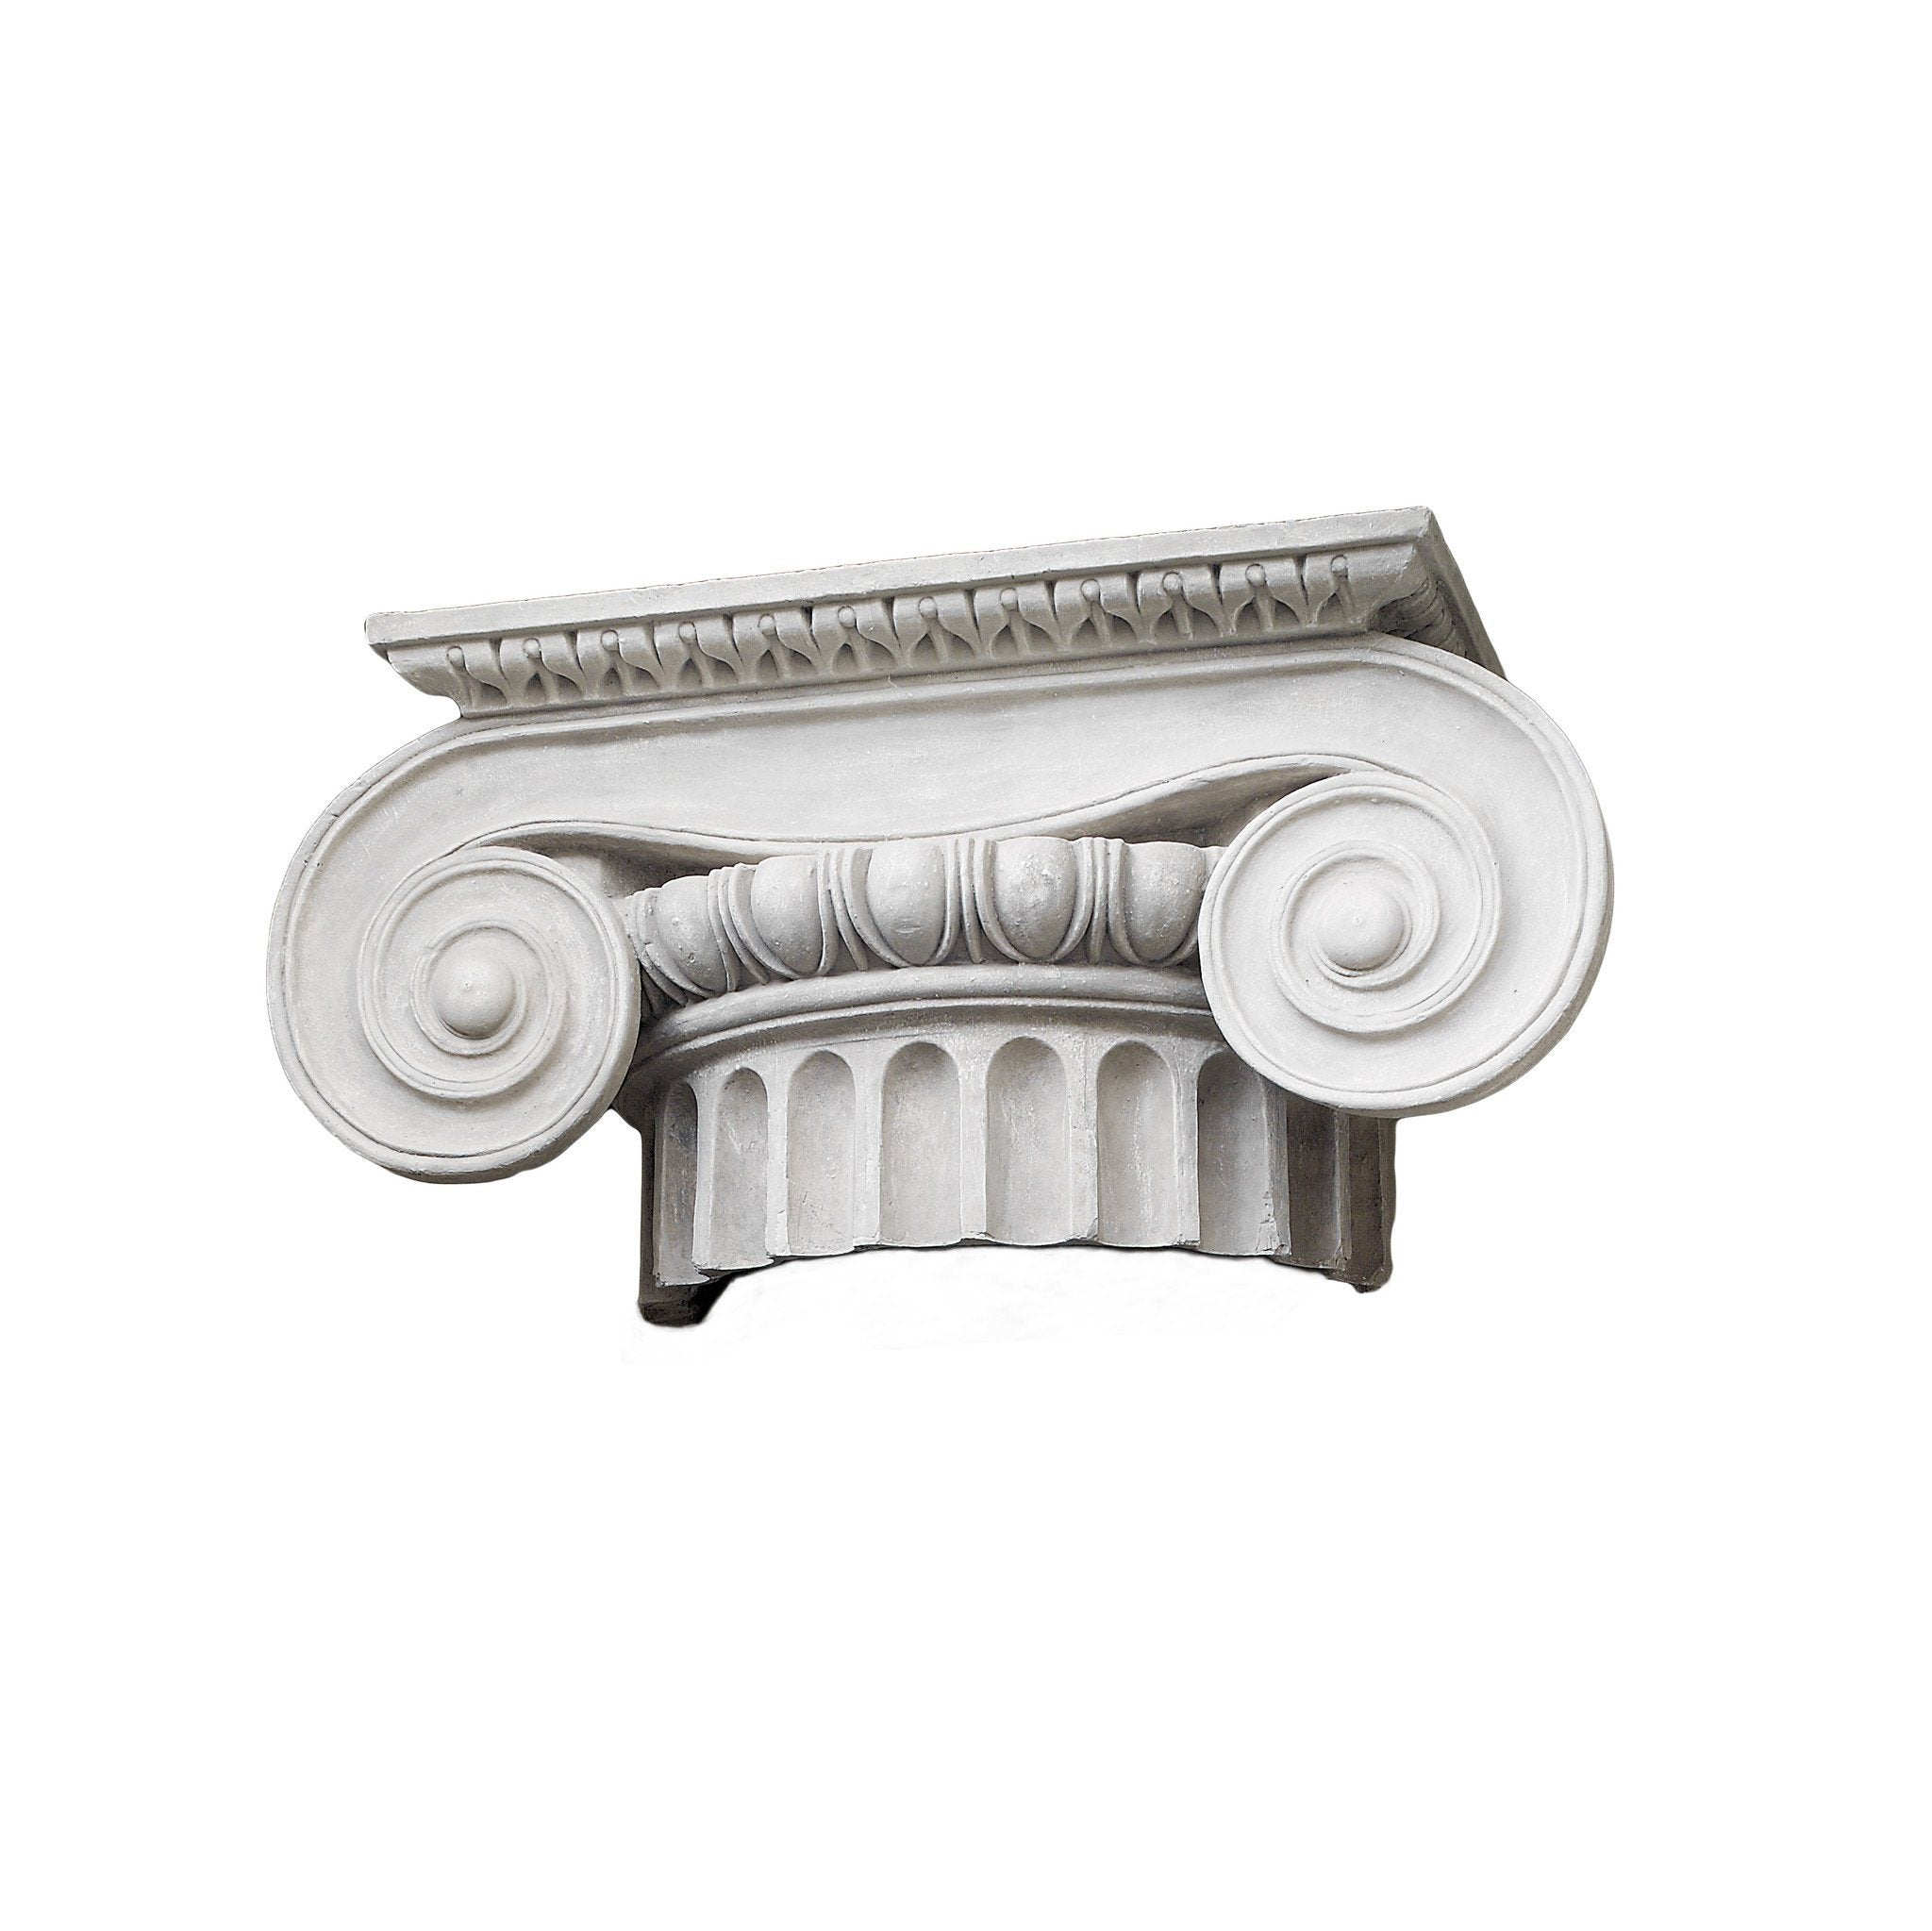 Large Iconic Plaster Capital - A Modern Grand Tour